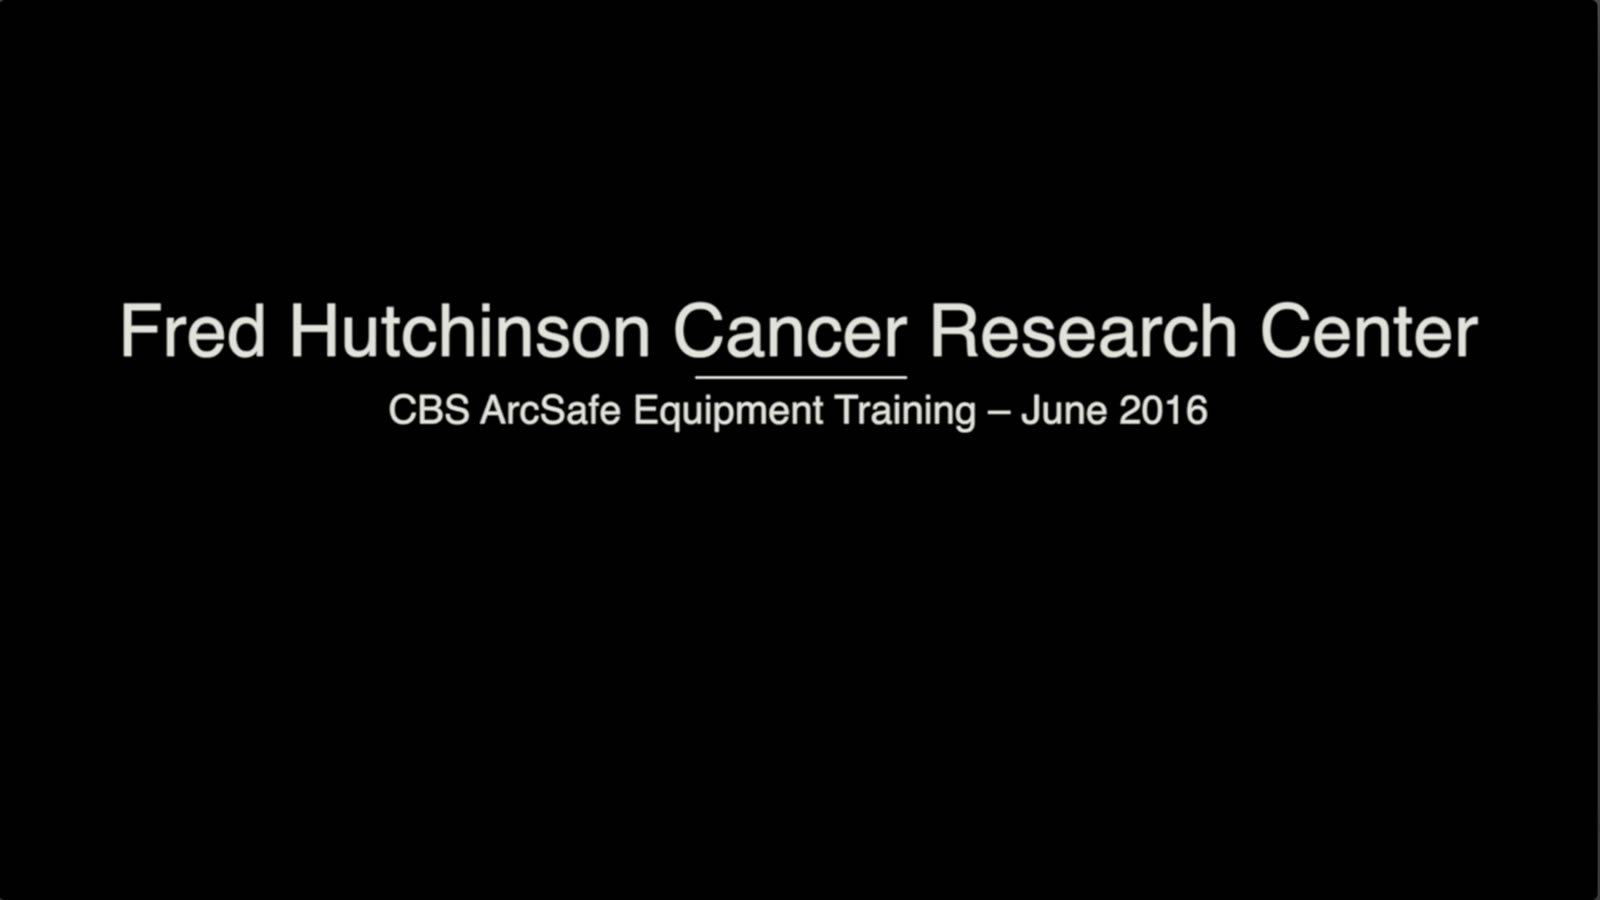 Fred Hutch Training Video